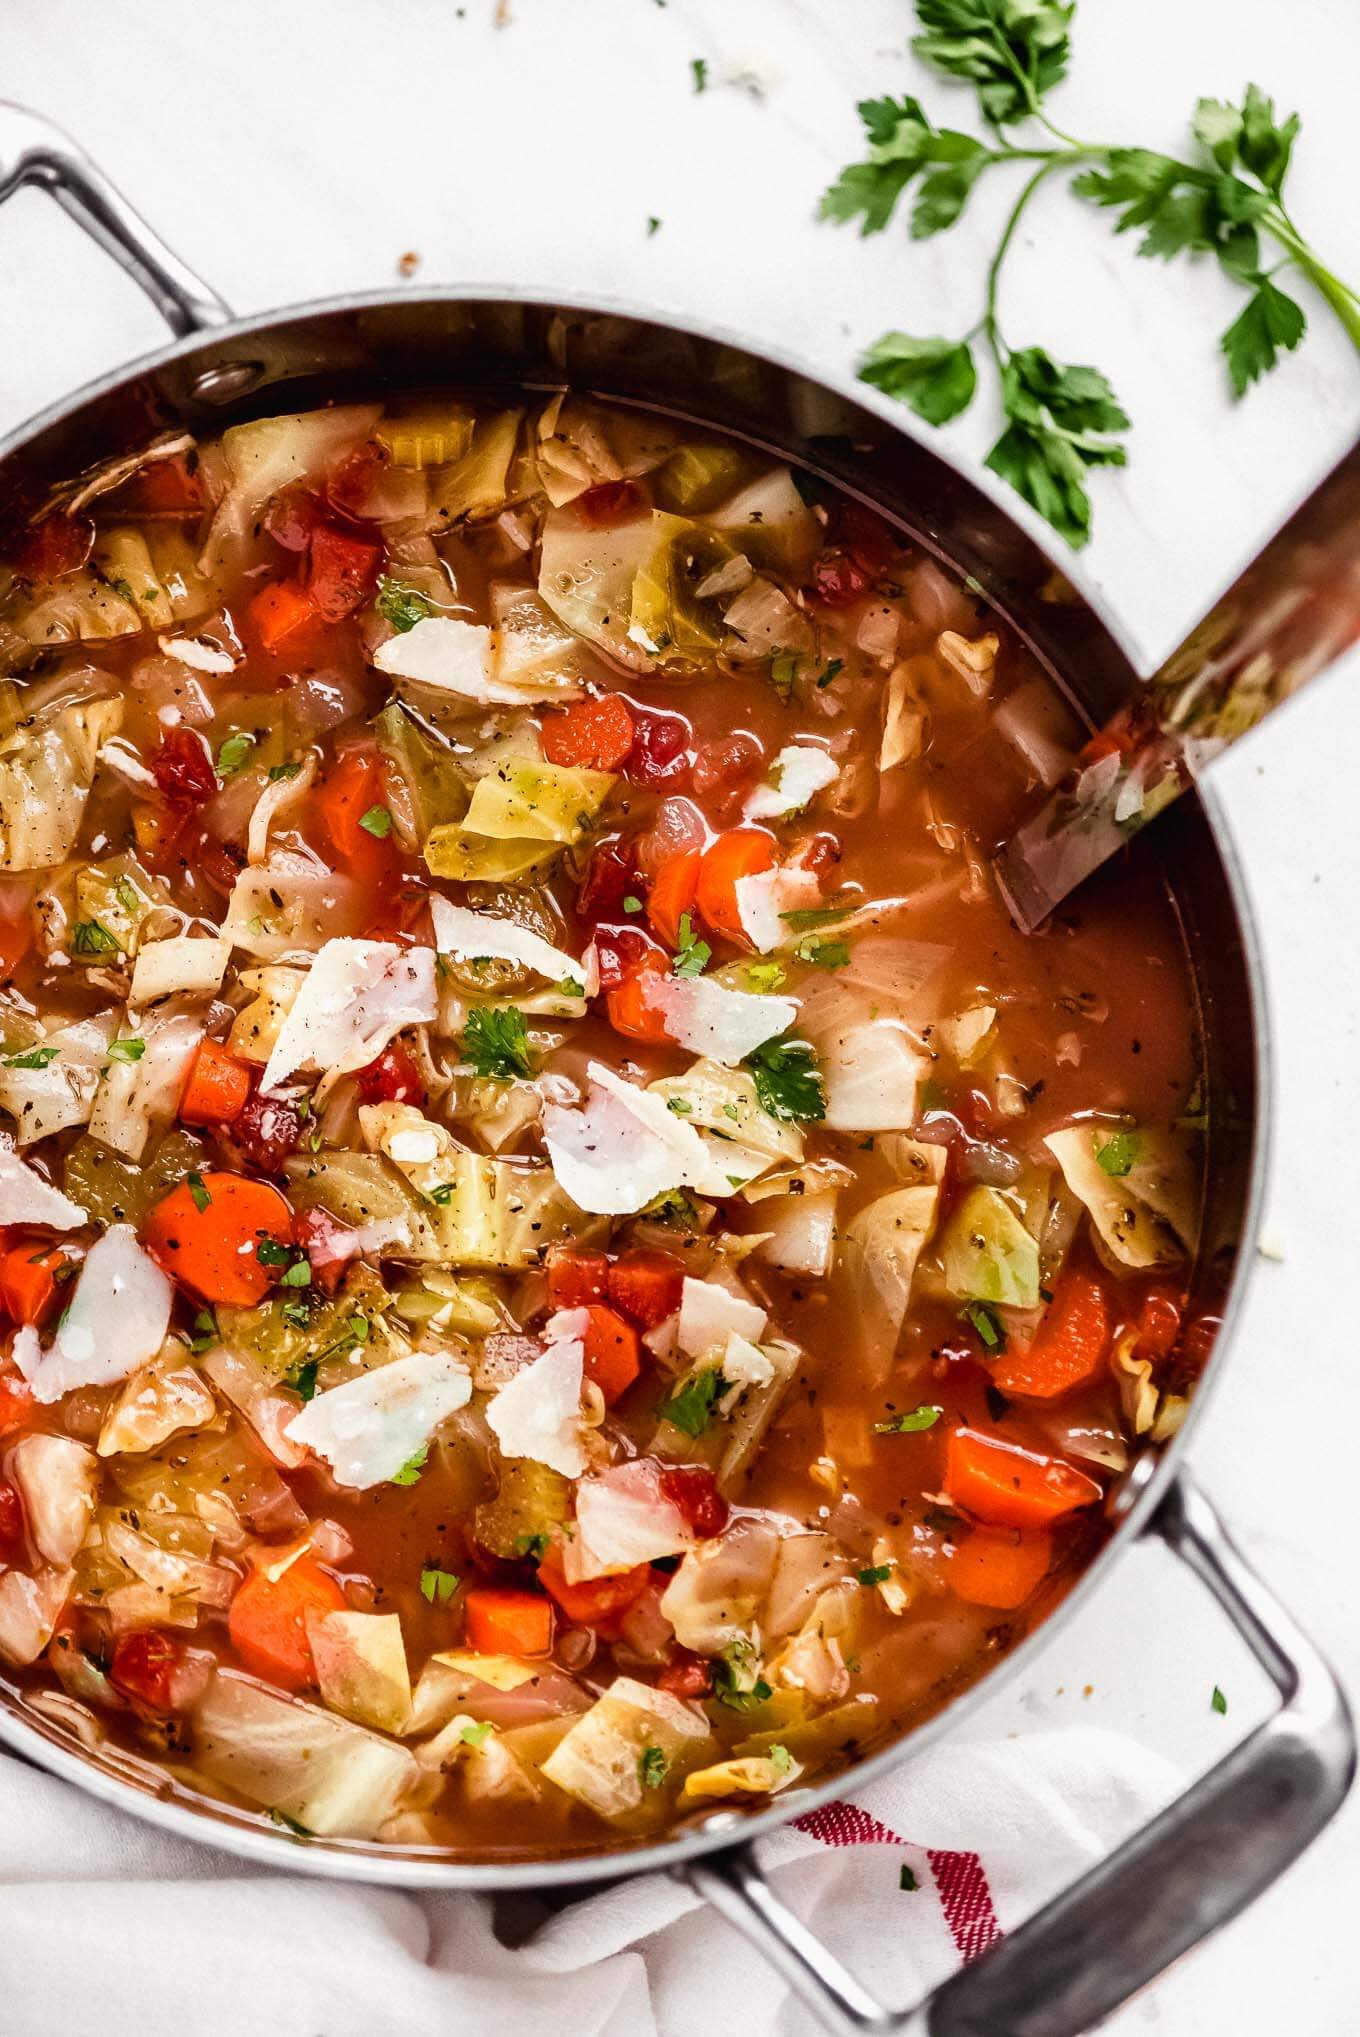 A large pot of Cabbage Soup with shaved Parmesan and chopped parsley sprinkled on top.